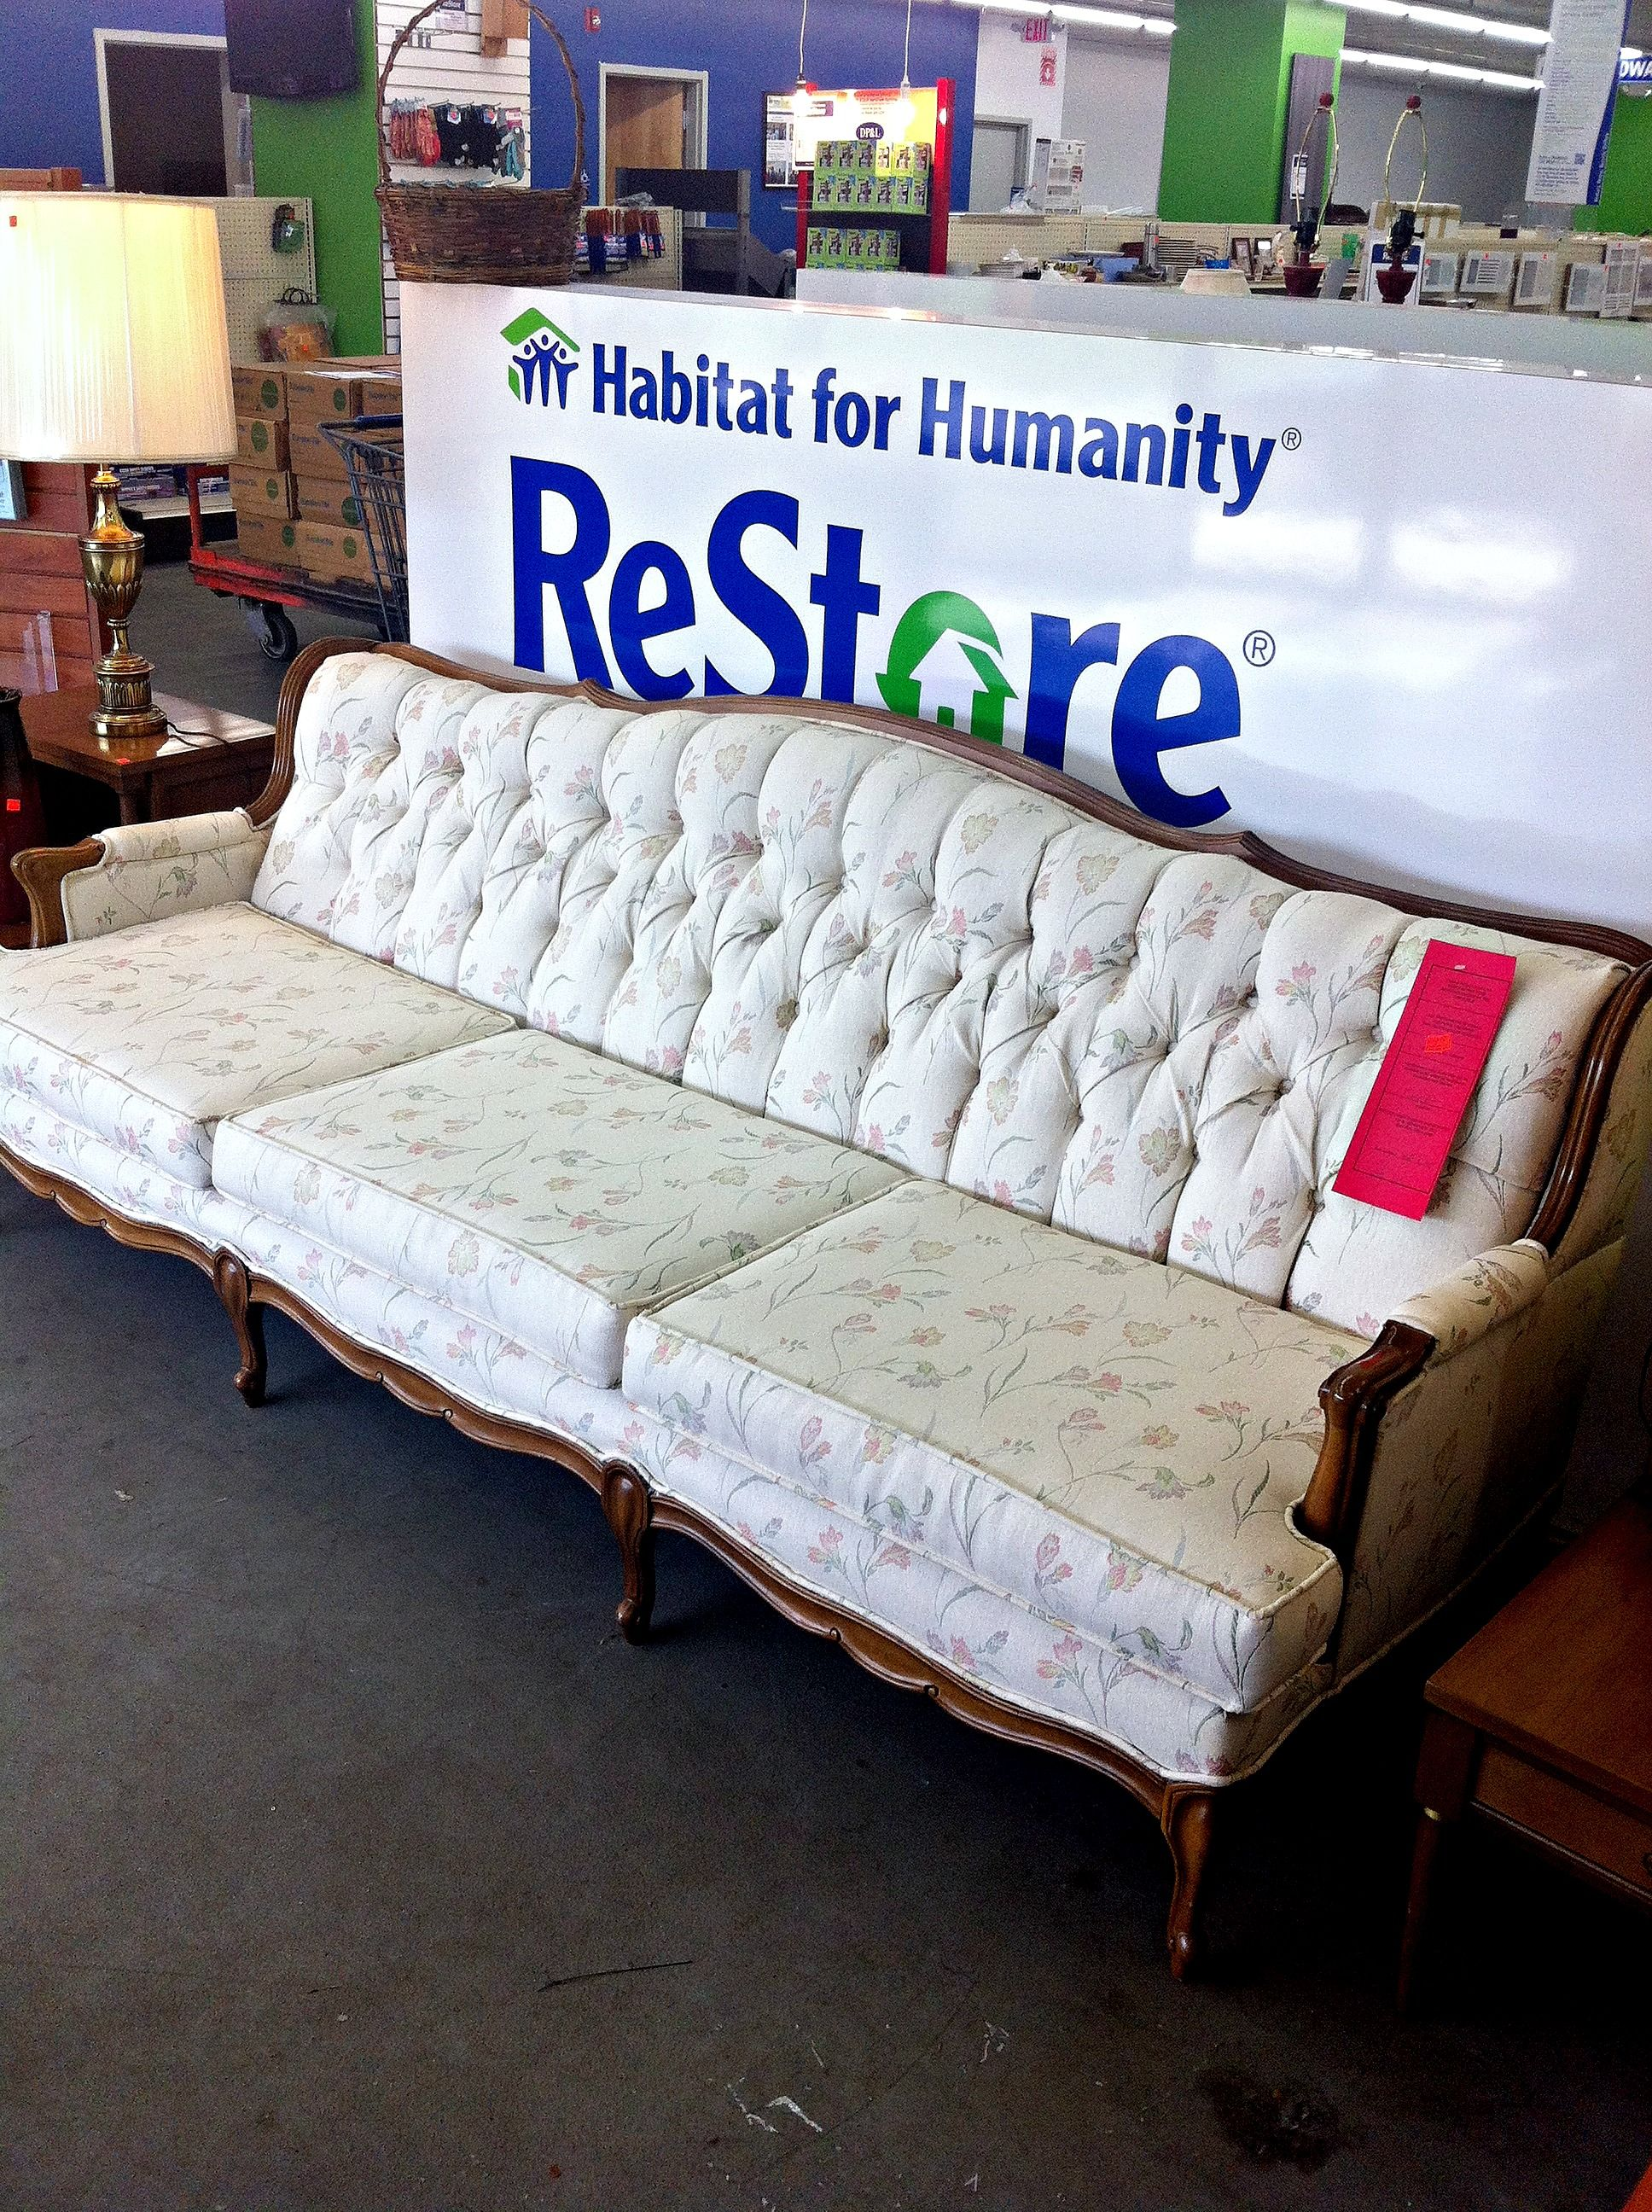 Visit the Habitat of Greater Dayton ReStore to find amazing deals